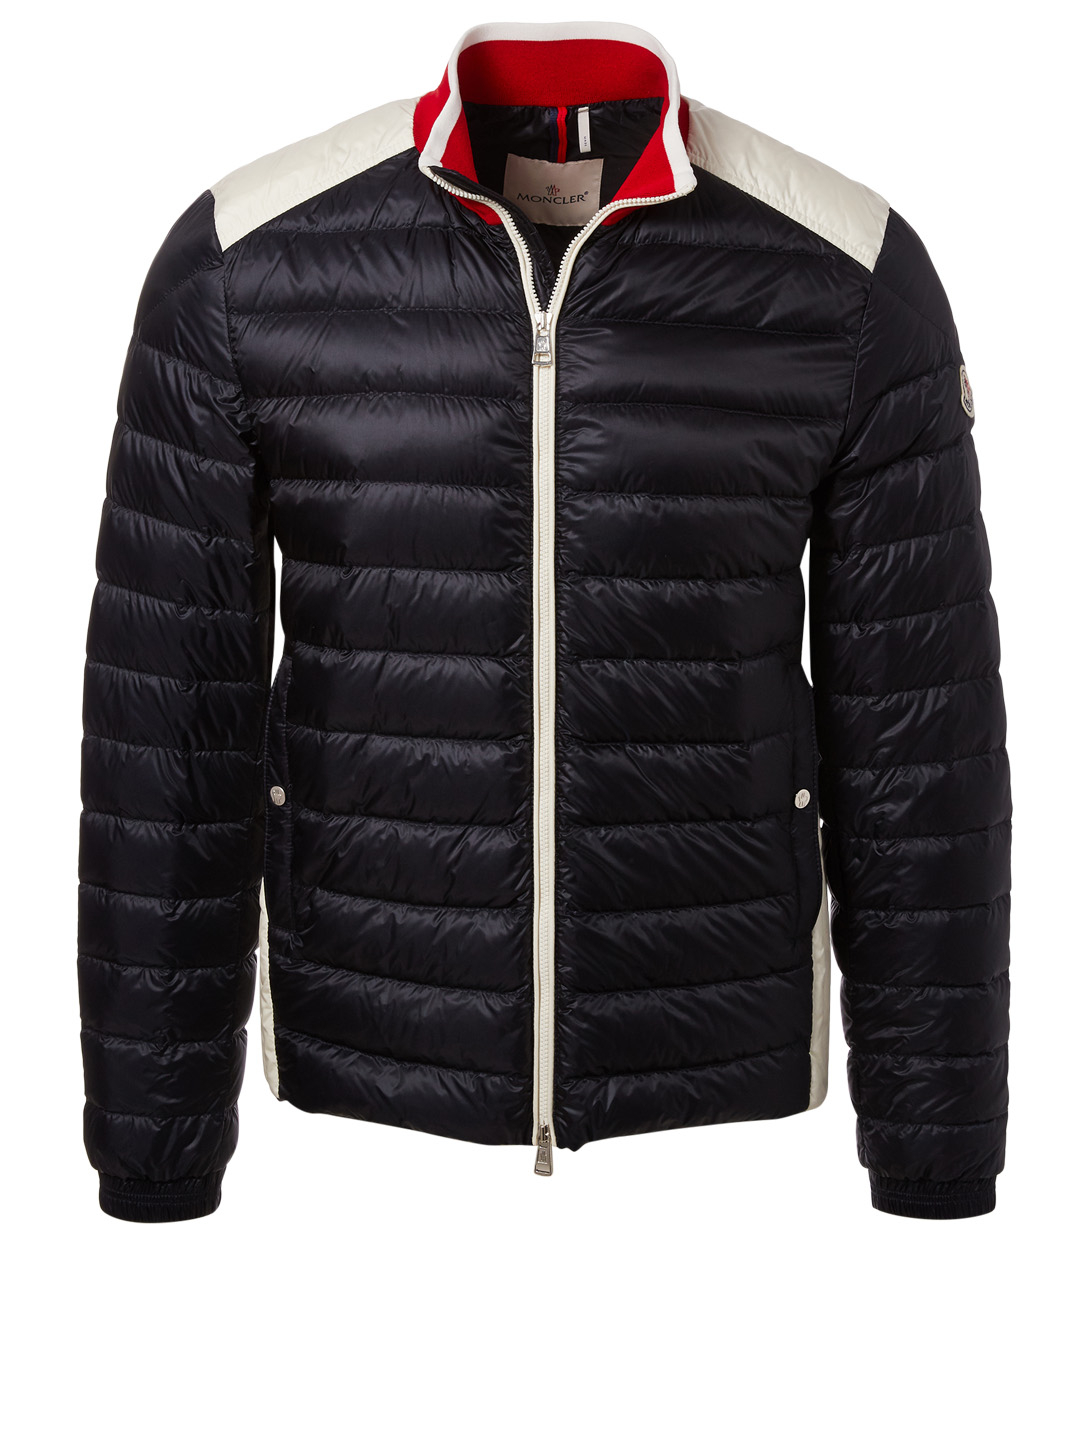 MONCLER Barteau Down Puffer Jacket Men's Multi